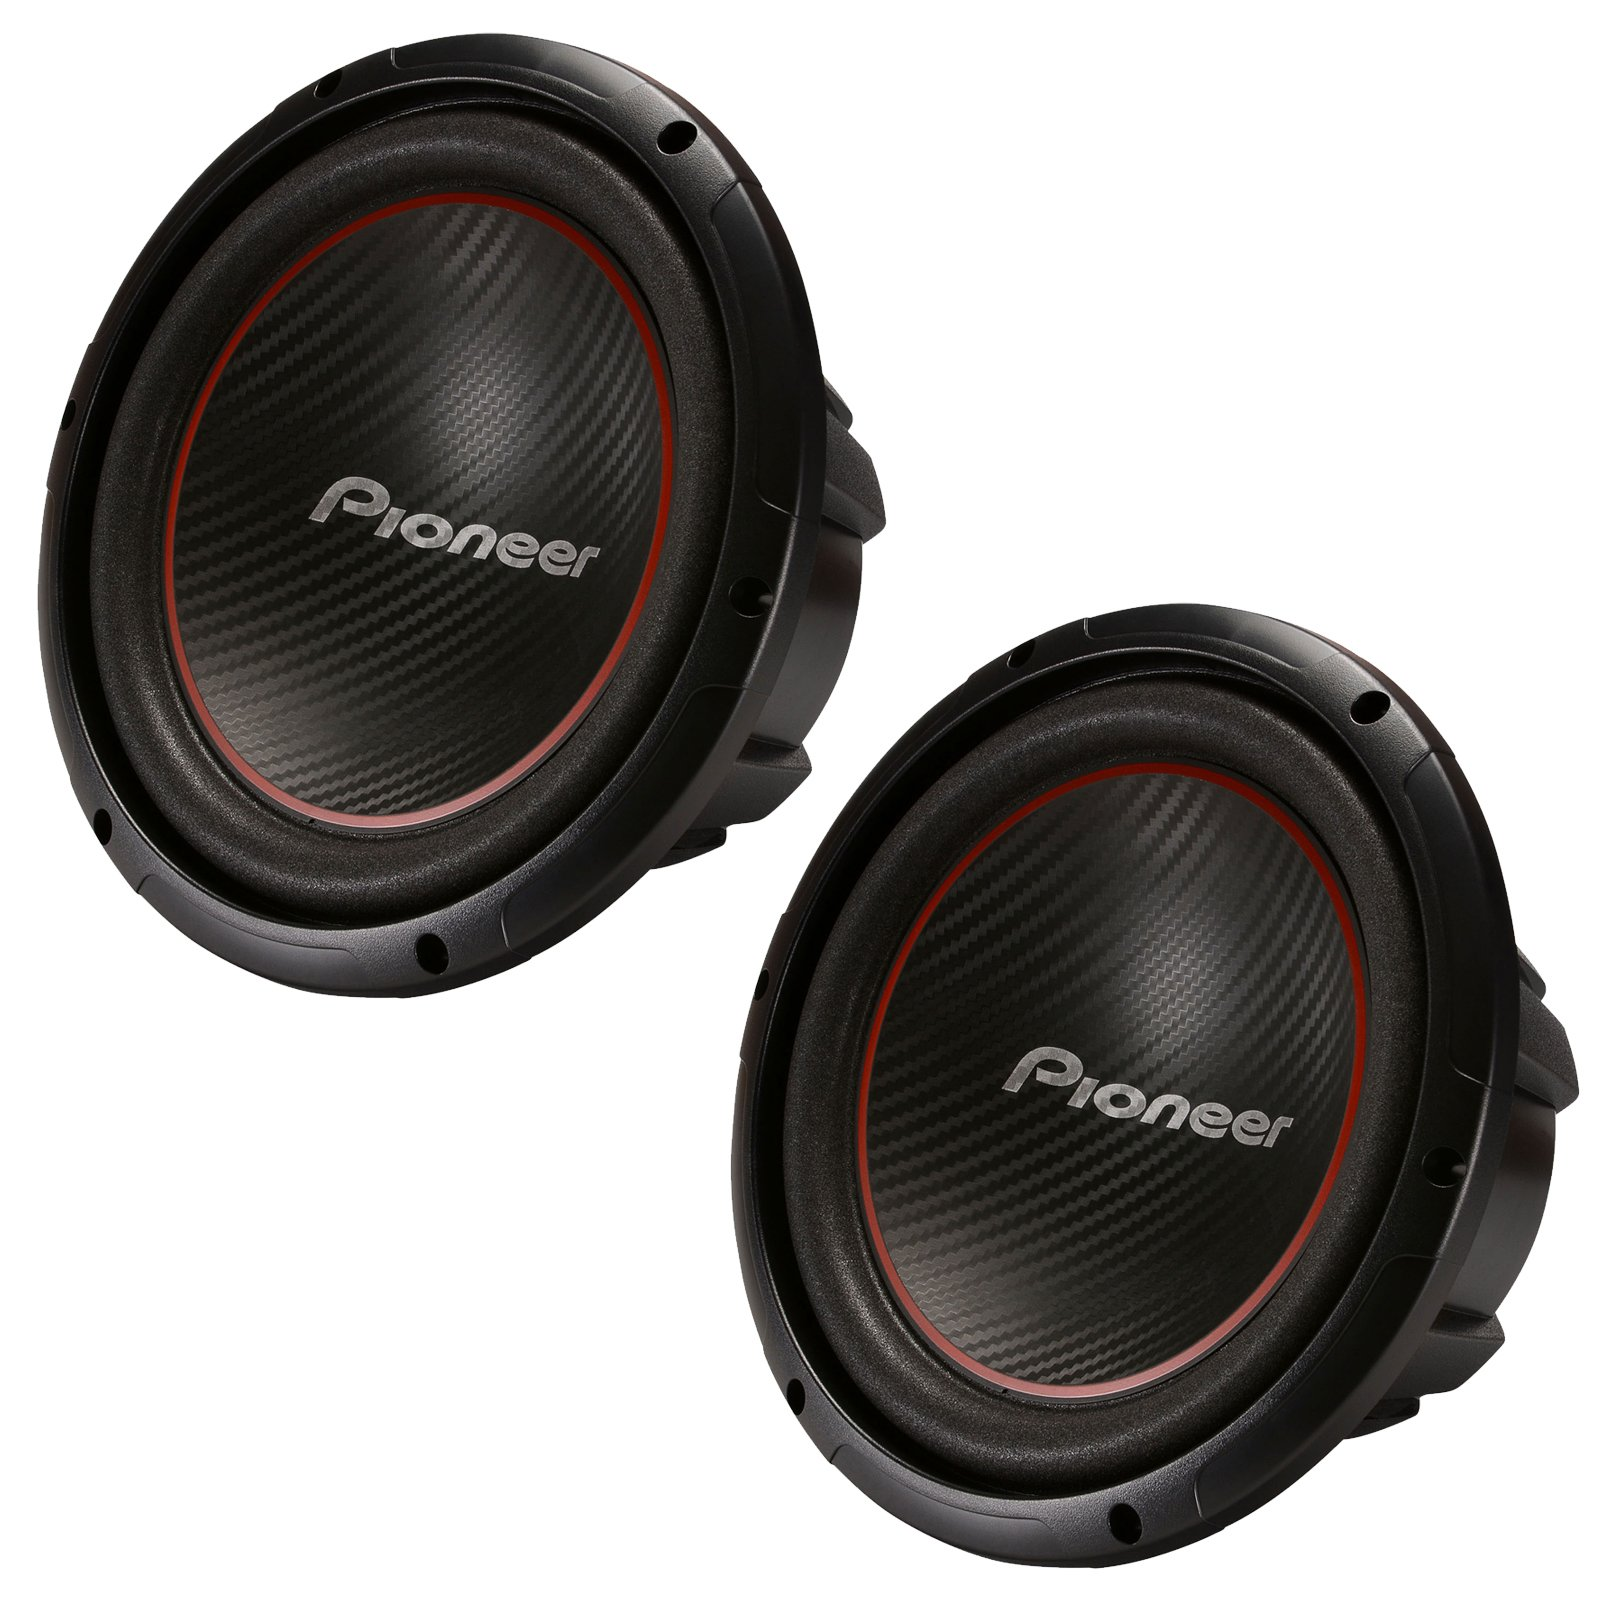 galleon pioneer ts w304r 12 inch 2 x 1300w subwoofers. Black Bedroom Furniture Sets. Home Design Ideas